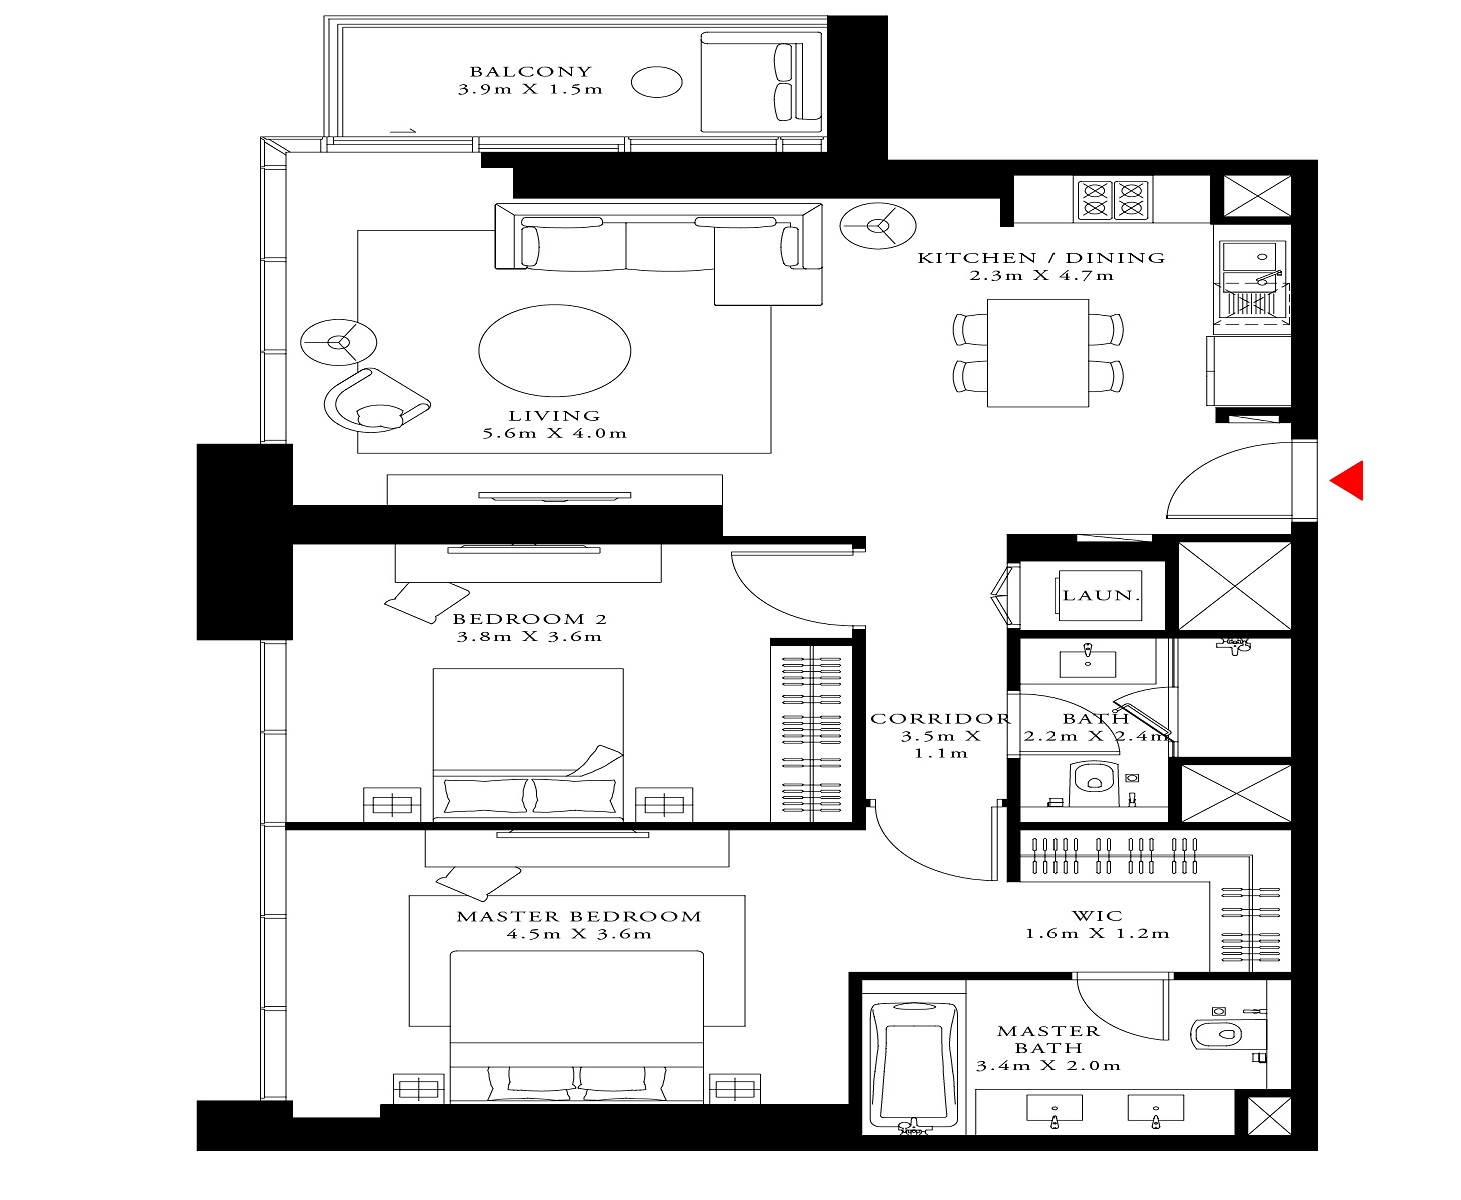 emaar act one act two apartment 2 bhk 1161sqft 20210801150837